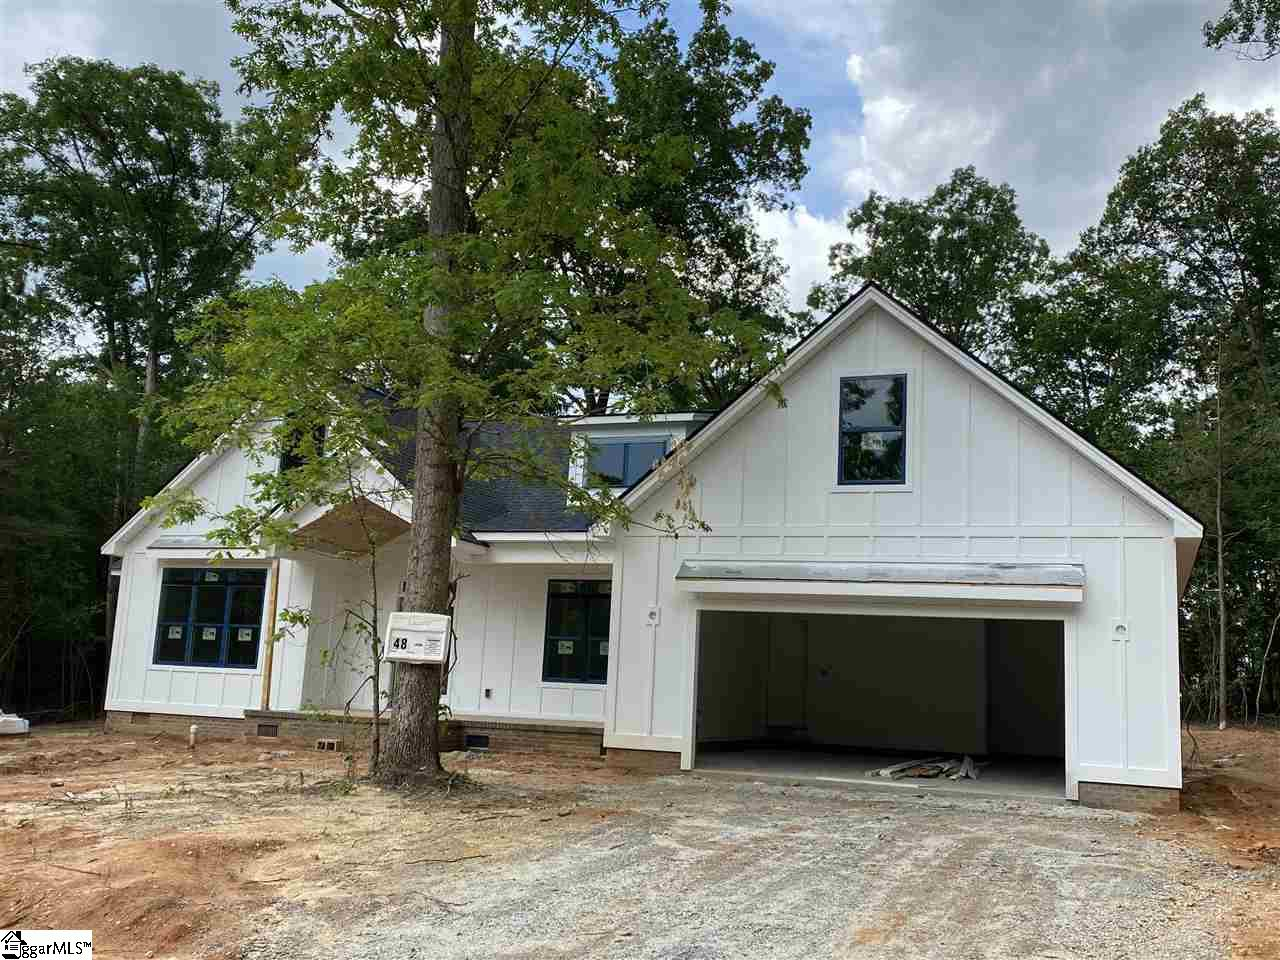 201 Granite Hill Pelzer, SC 29669